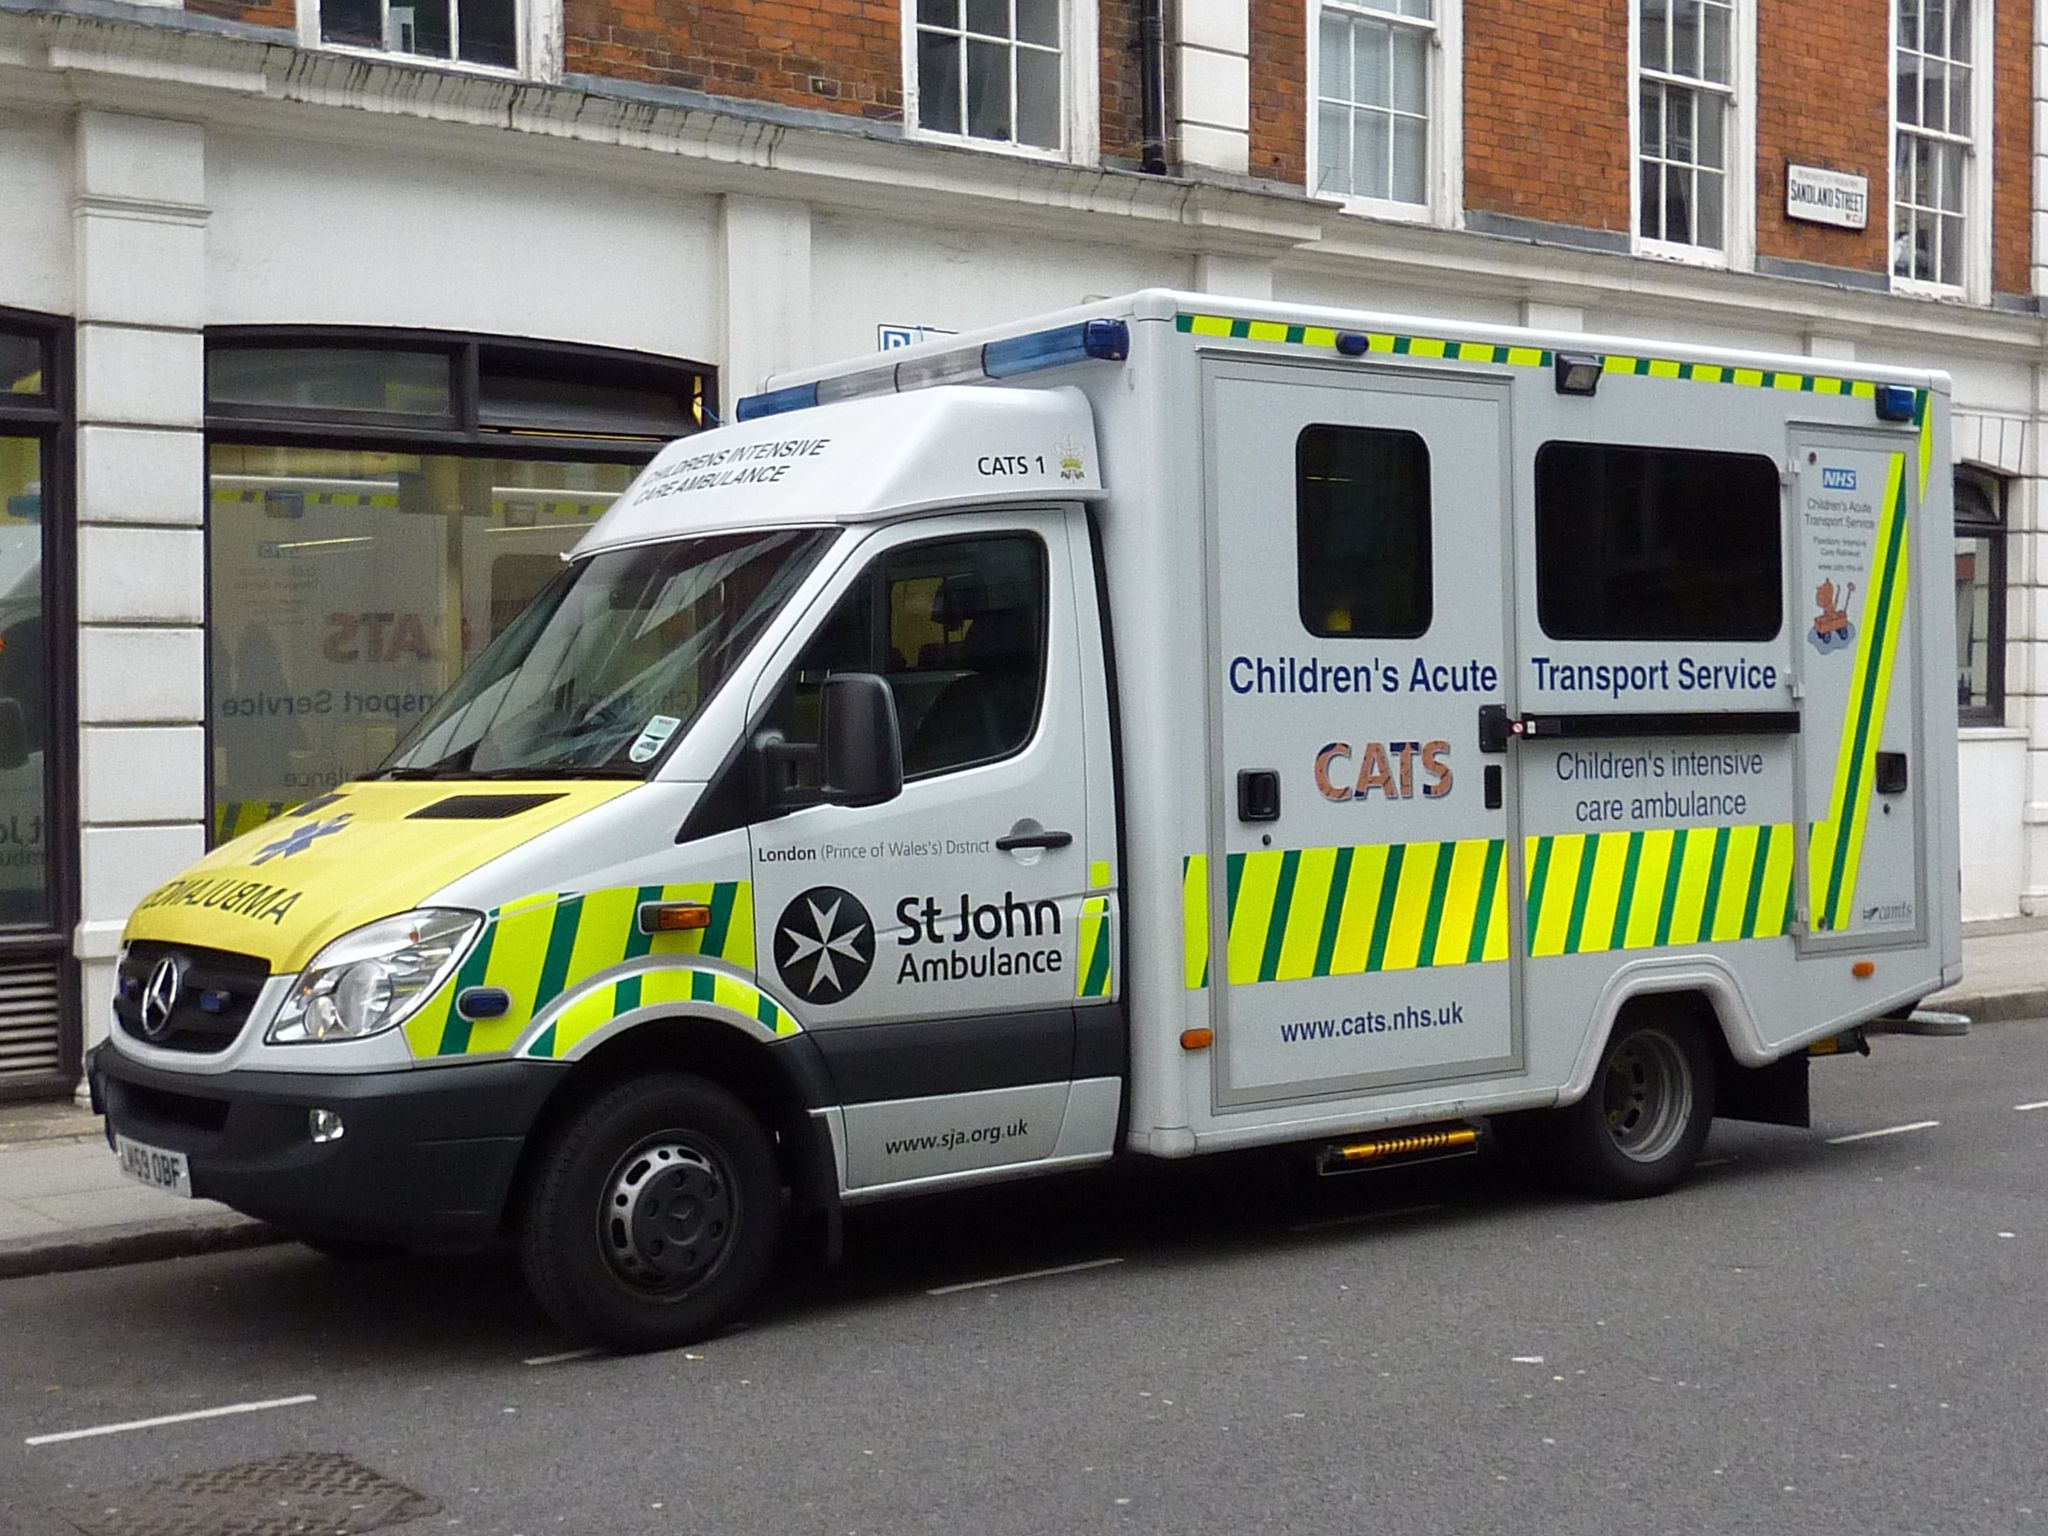 Cats Ambulance